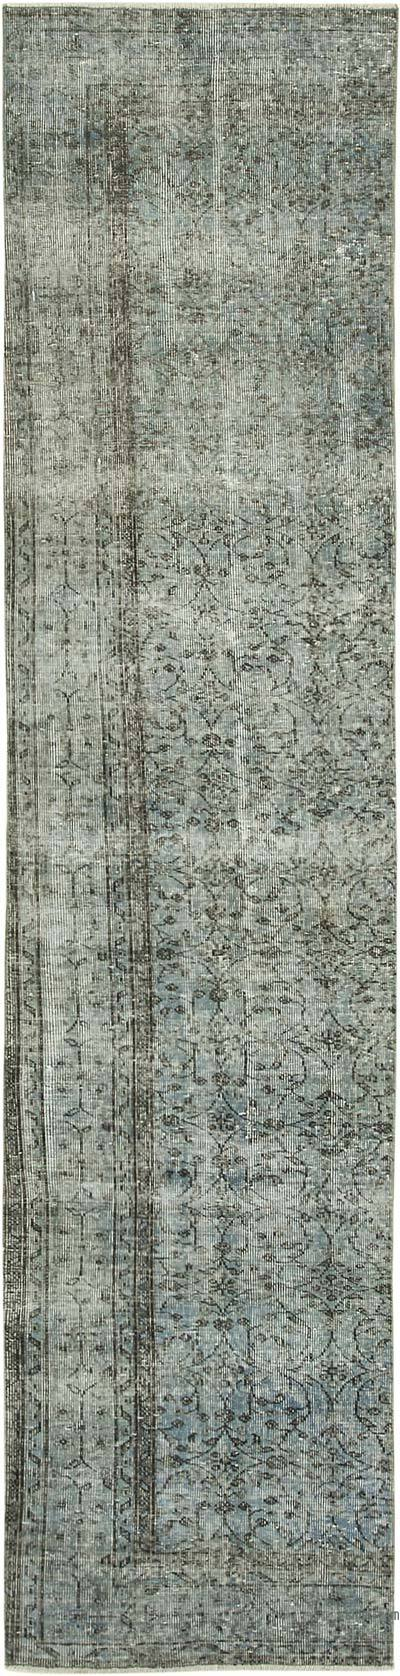 """Blue Over-dyed Turkish Vintage Runner Rug - 2' 6"""" x 10' 8"""" (30 in. x 128 in.)"""